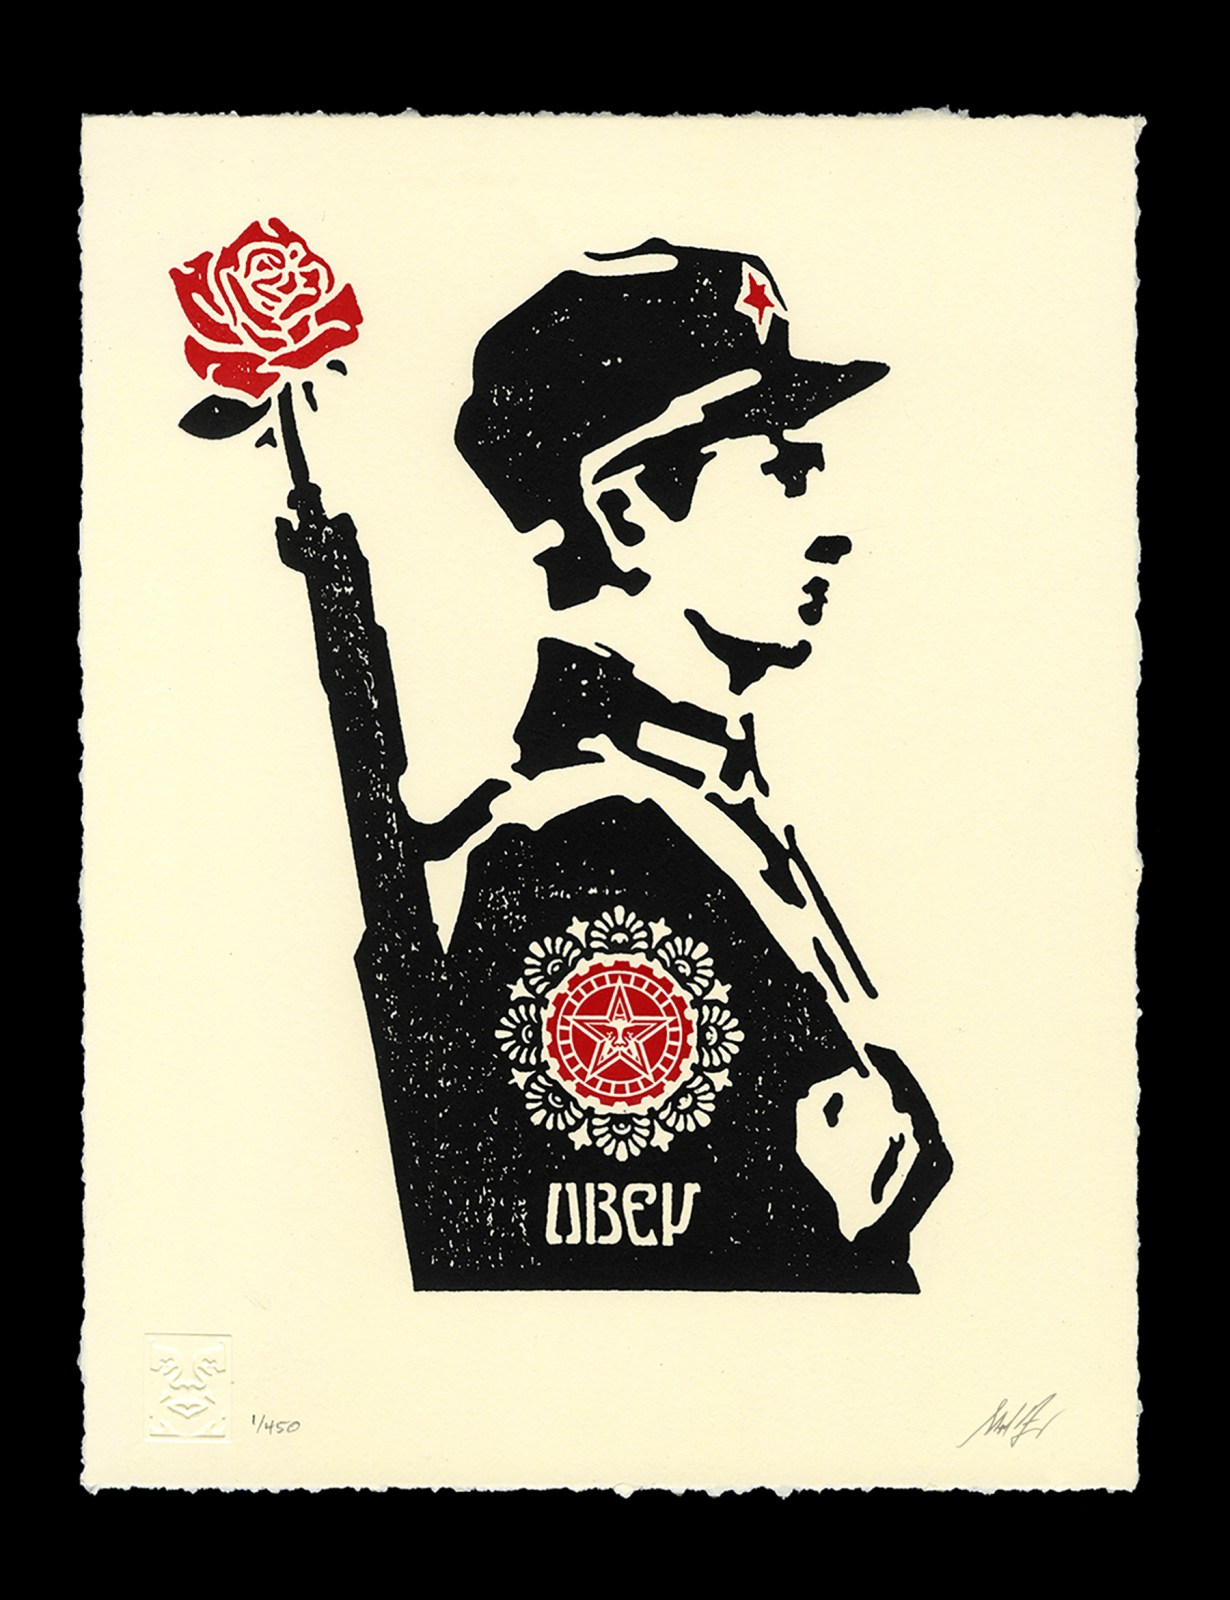 rose soldier letterpress avail 10 10 obey giant. Black Bedroom Furniture Sets. Home Design Ideas